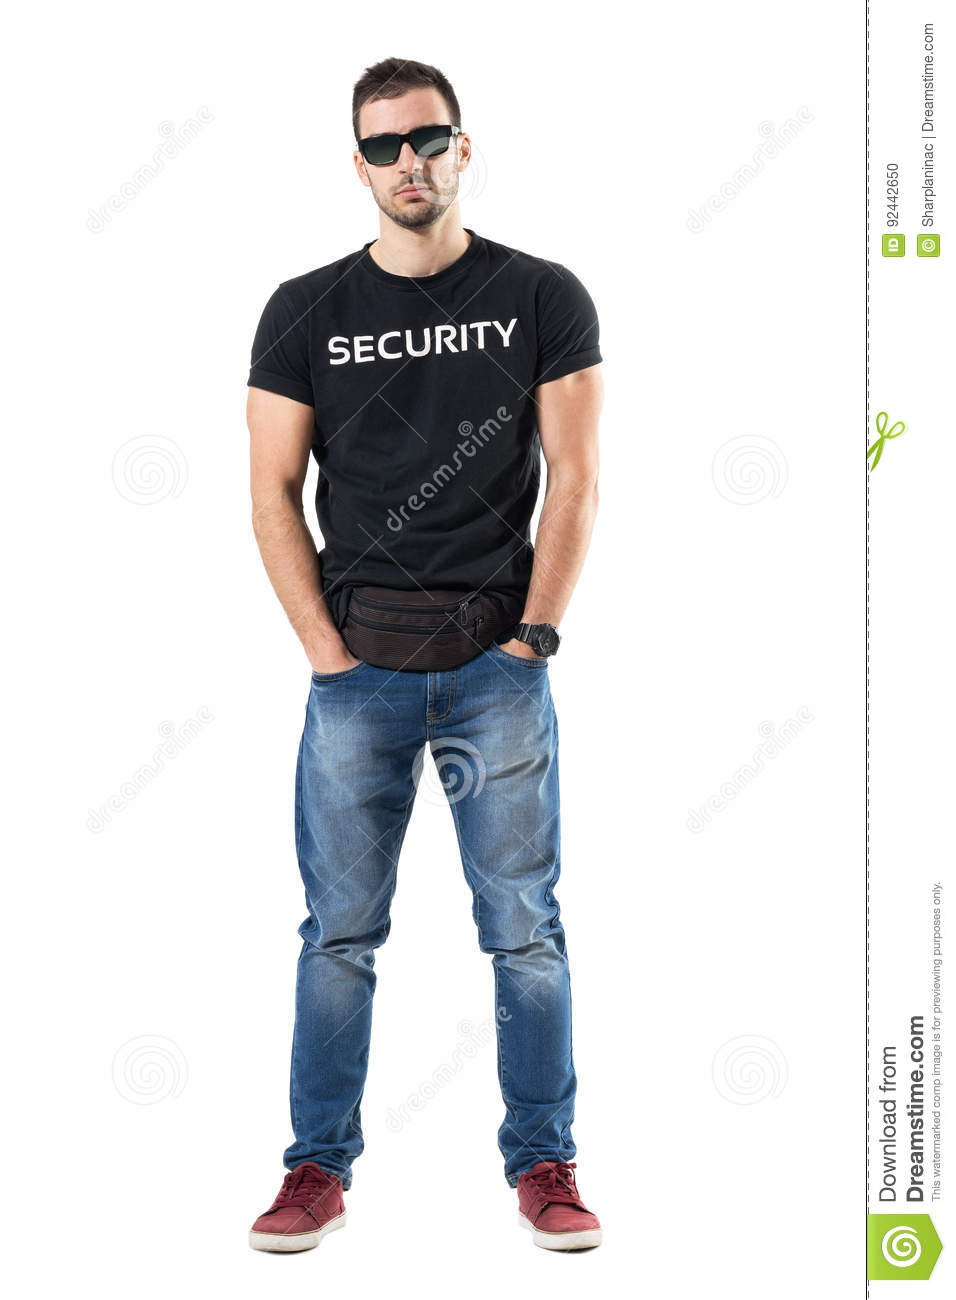 Serious Undercover Cop With Hands In Pockets Wearing Waist Bag